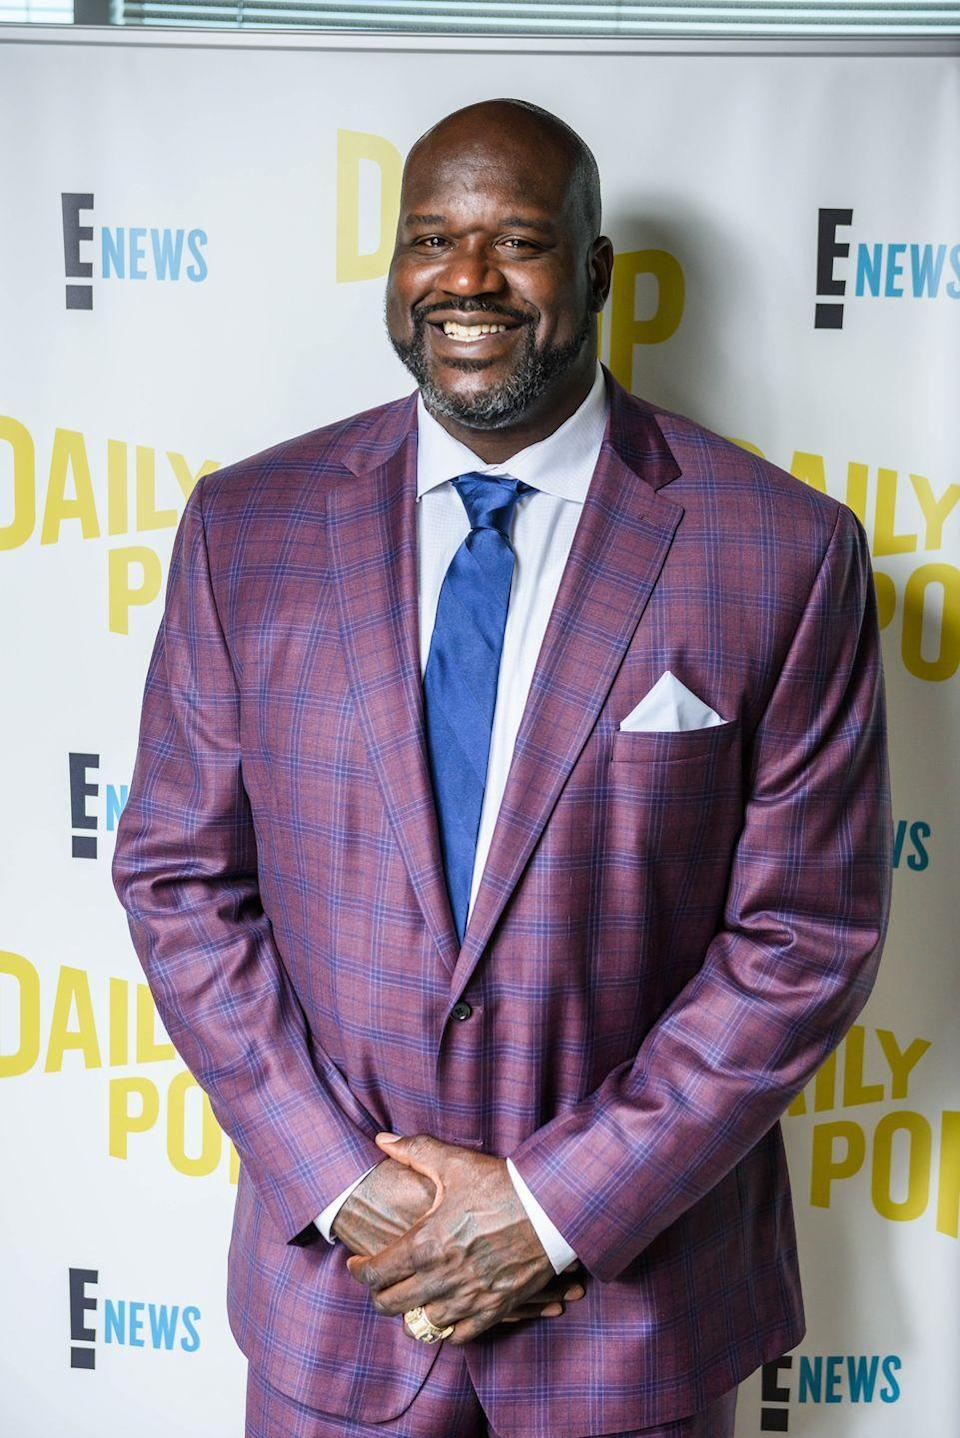 """<p>While studying business and racking up points on the court, Shaquille O'Neal pledged <a href=""""https://oppf.org/about-omega/notable-omegas/"""" rel=""""nofollow noopener"""" target=""""_blank"""" data-ylk=""""slk:Omega Psi Phi"""" class=""""link rapid-noclick-resp"""">Omega Psi Phi</a> at Louisiana State University. The famous basketball player was a student at the school until 1992, when he was drafted into the NBA. </p>"""